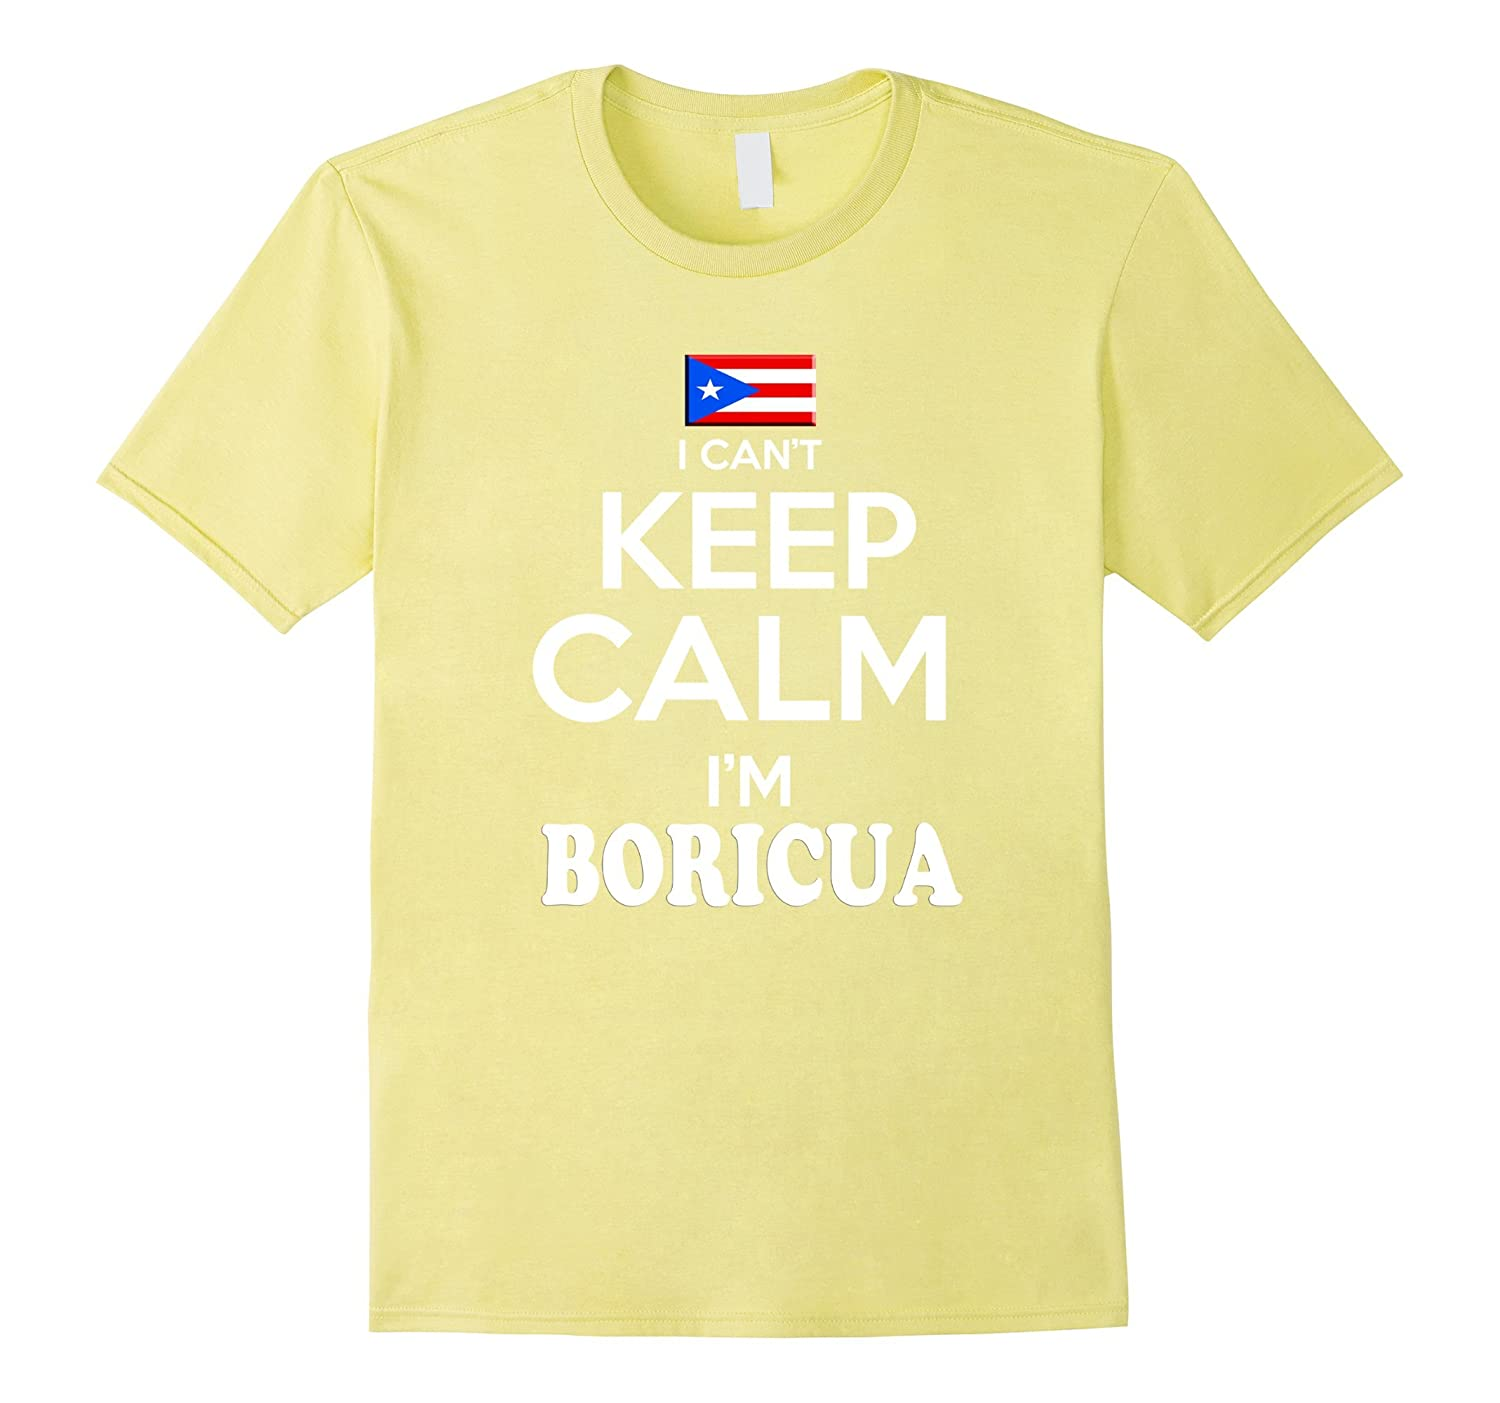 Amazon.com: Puerto Rico Keep Calm Boricua tshirt Puerto Rican Camiseta: Clothing